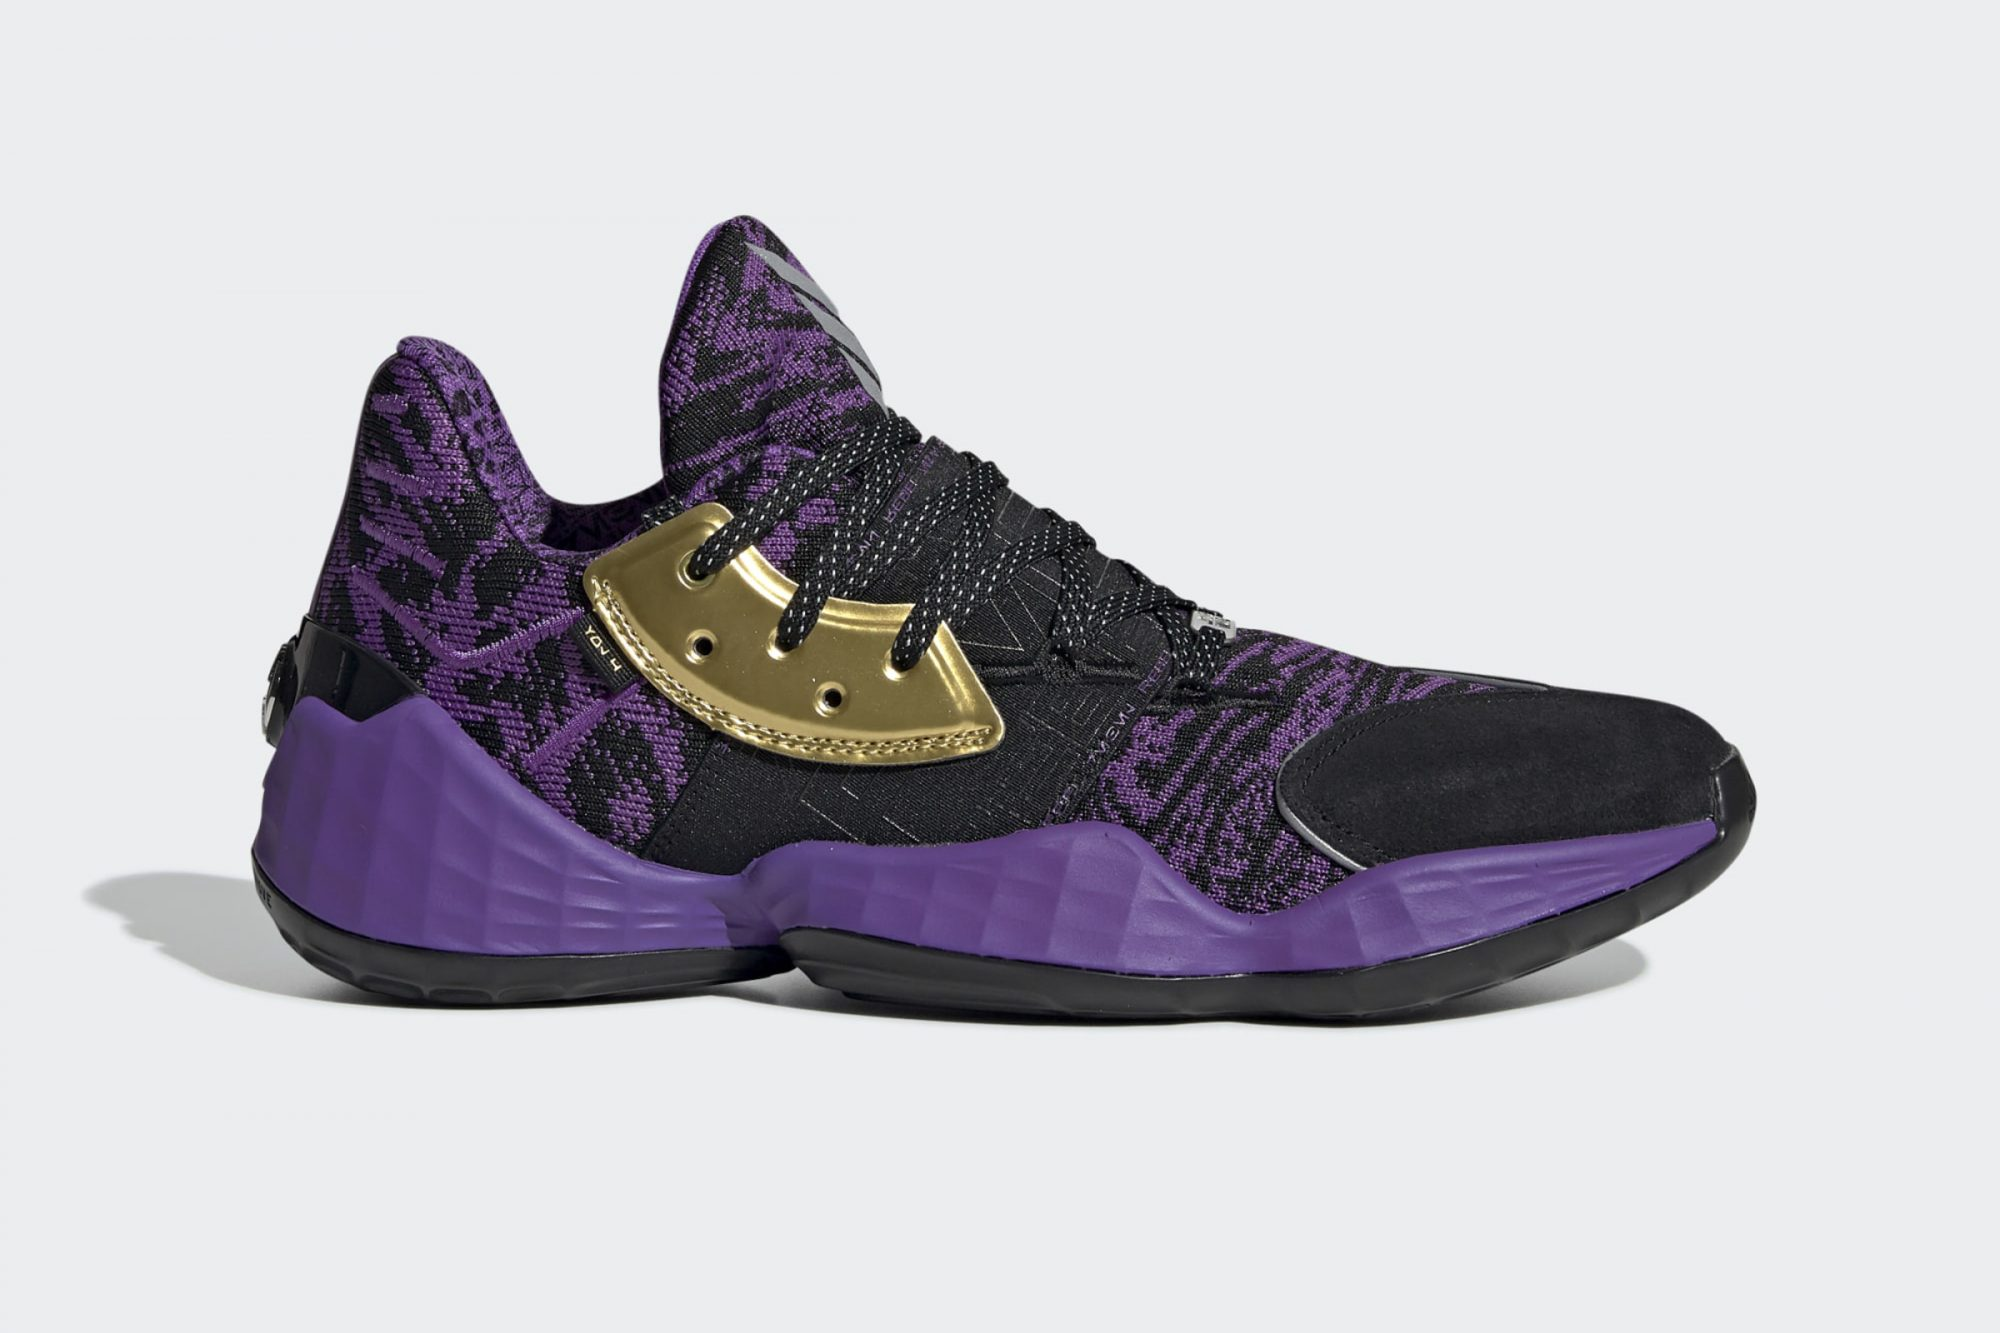 adidas Harden Vol. 4 Star Wars Lightsaber Purple Shoes from the Adidas Star Wars Sneaker Collection